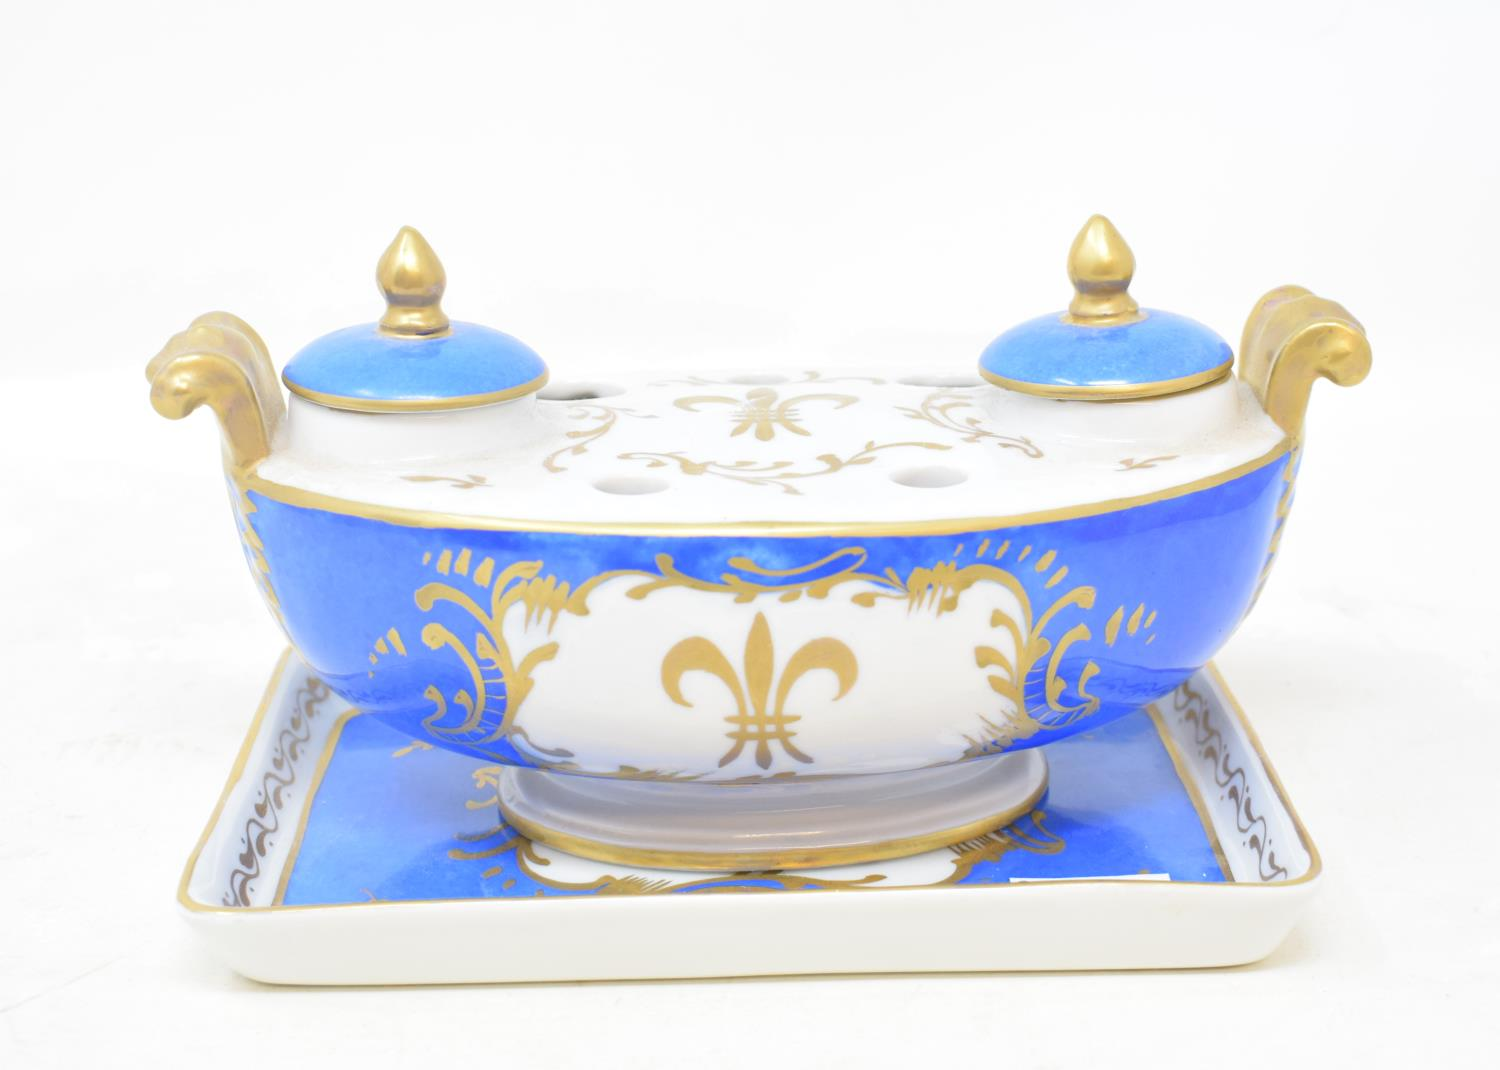 Lot 47 - A Limoges porcelain inkstand, with gilt decoration, 20 cm wide, other ceramics, glass, a Japanese